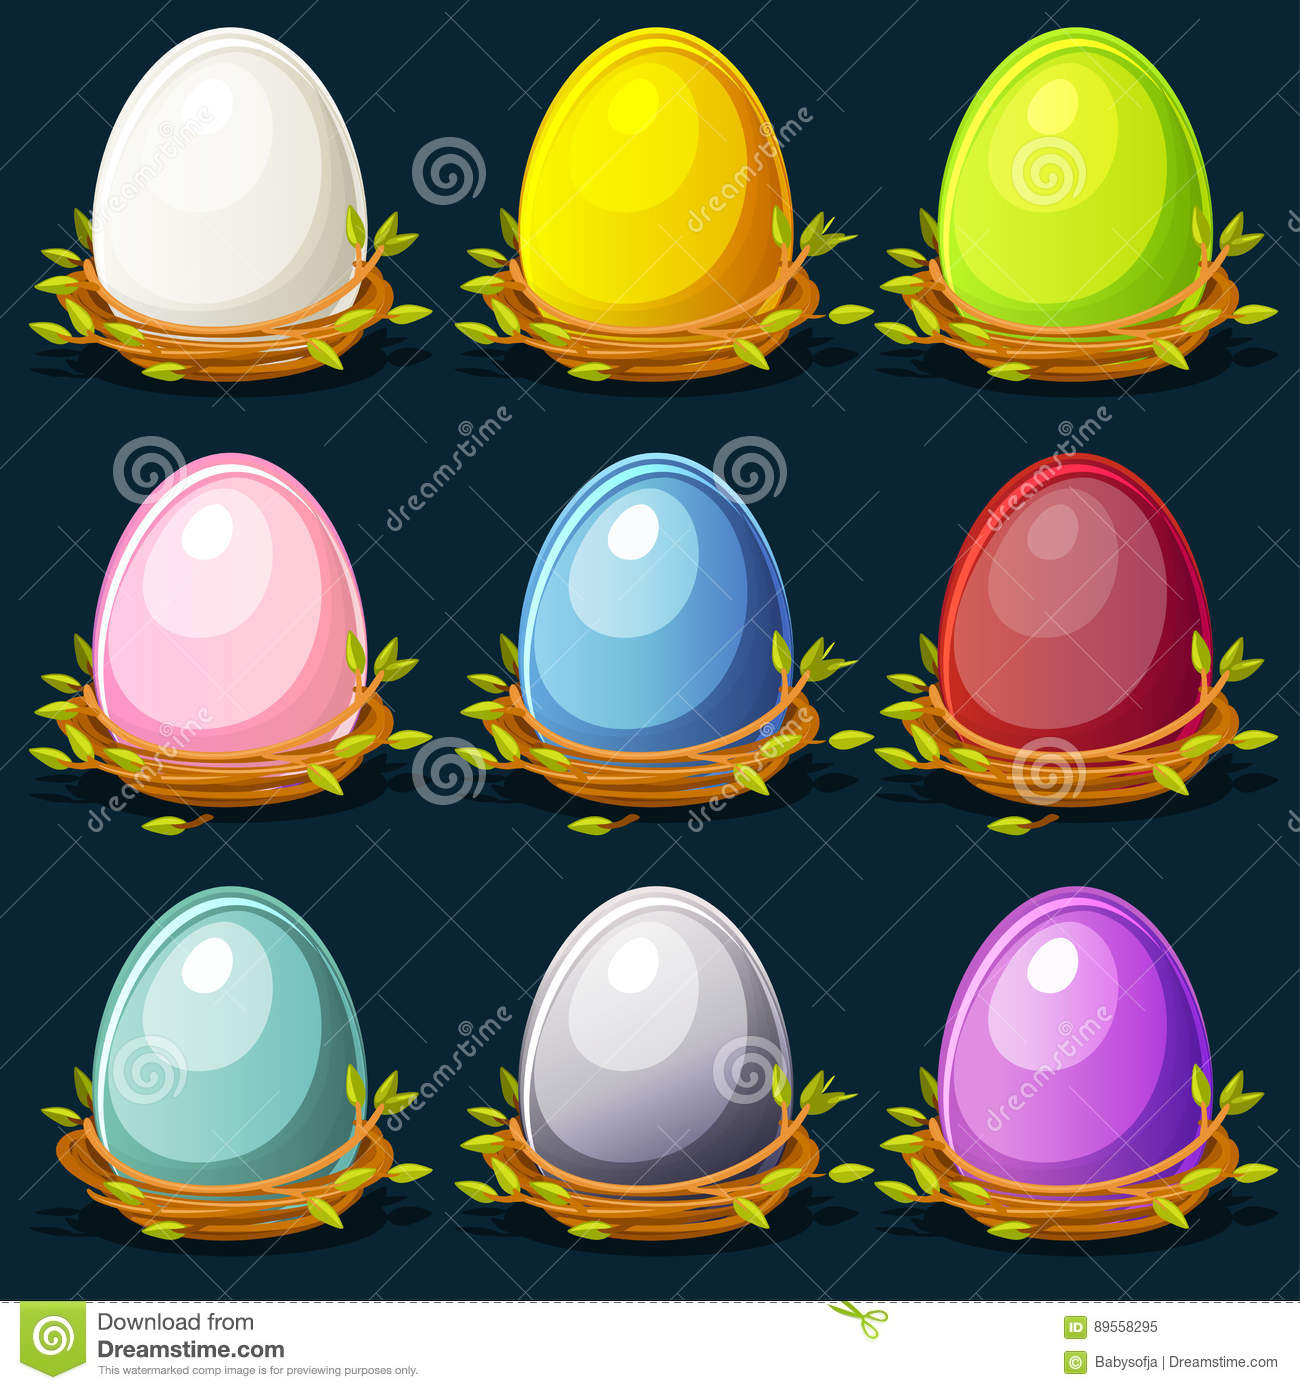 Cartoon funny colored birds Eggs in nest of twigs